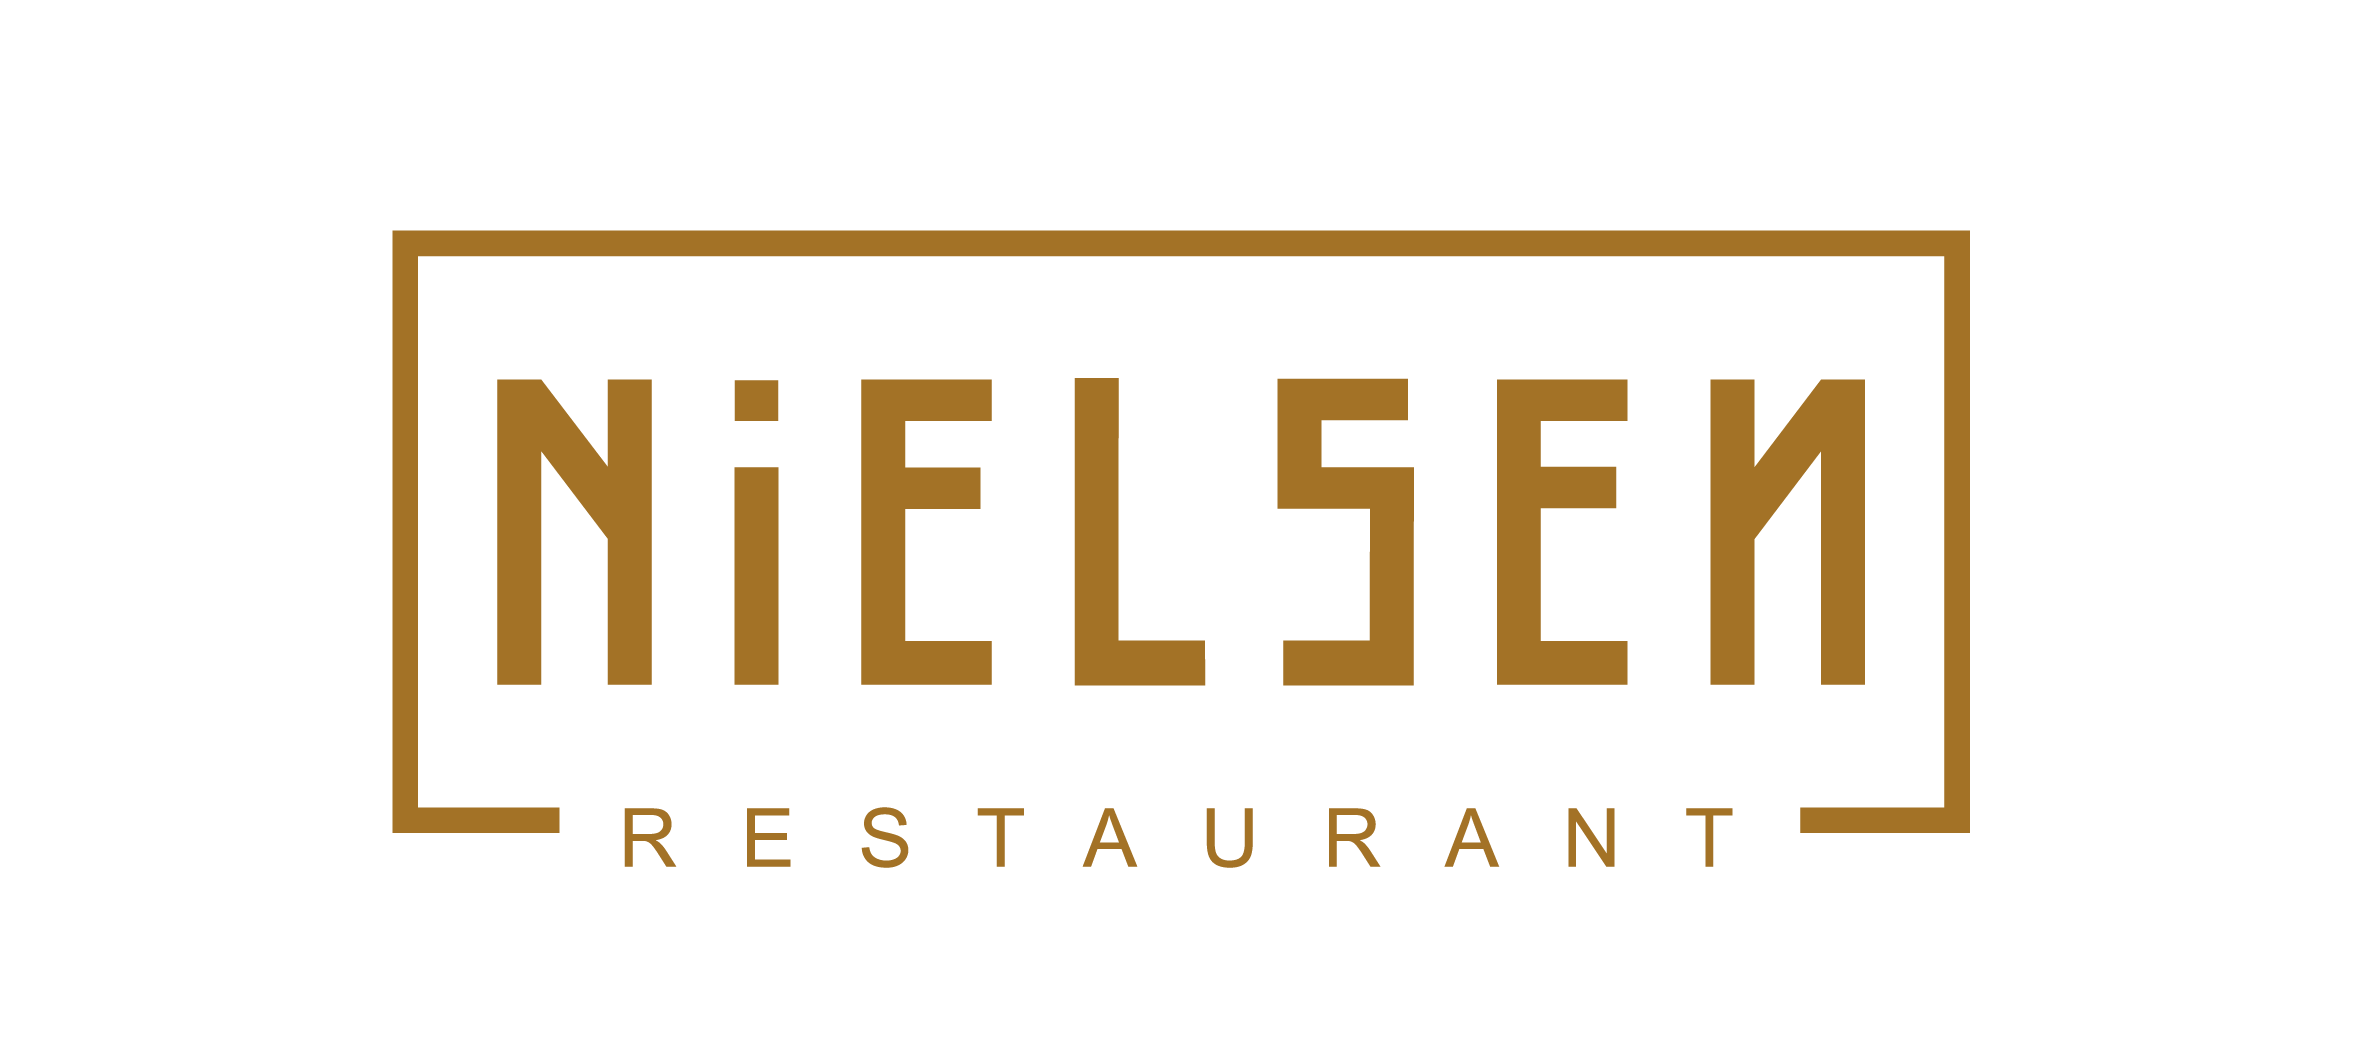 Welcome to Nielsen restaurant